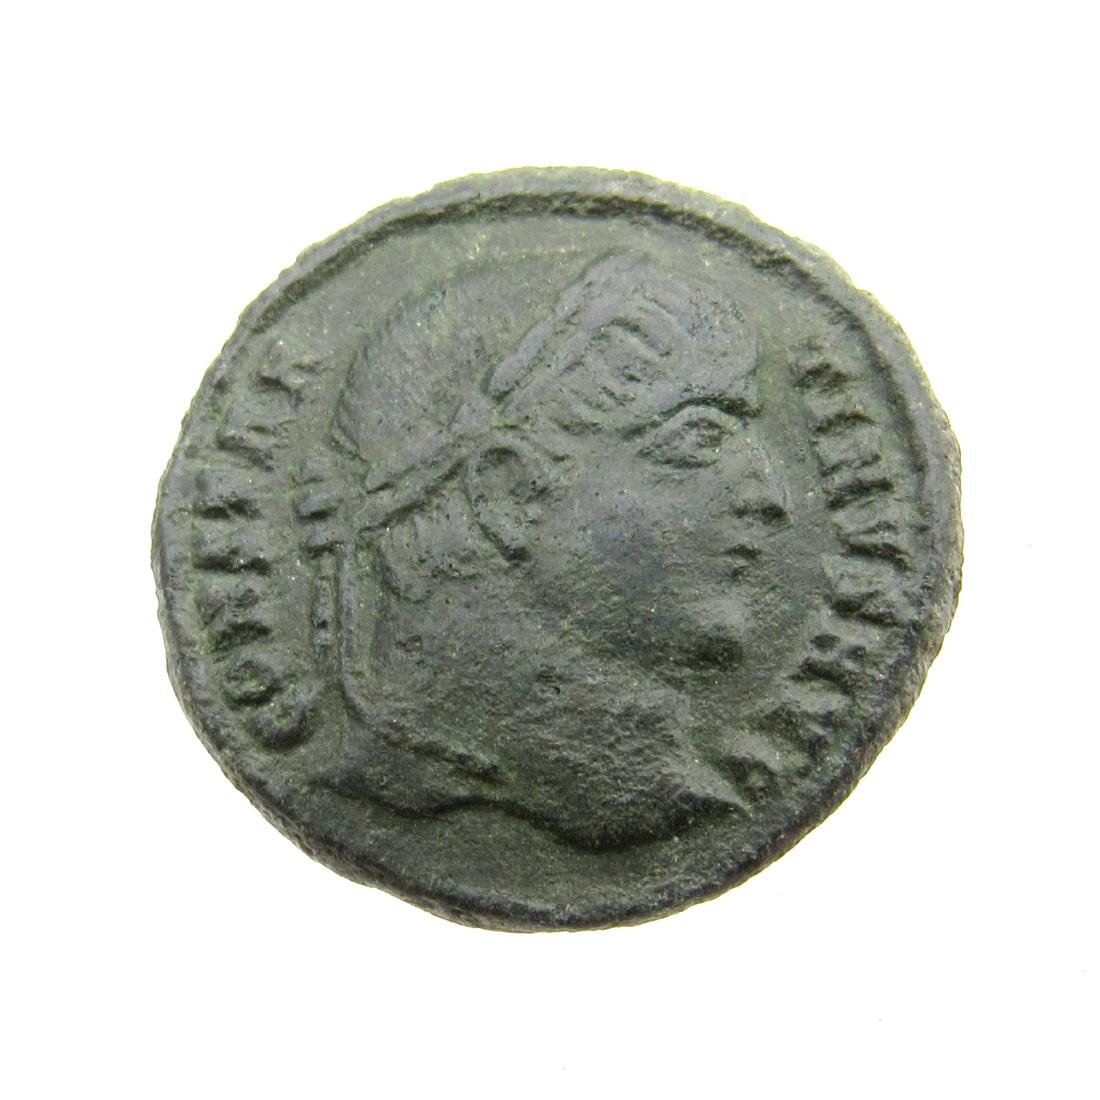 Superb Roman Ae Follis - House of Constantine